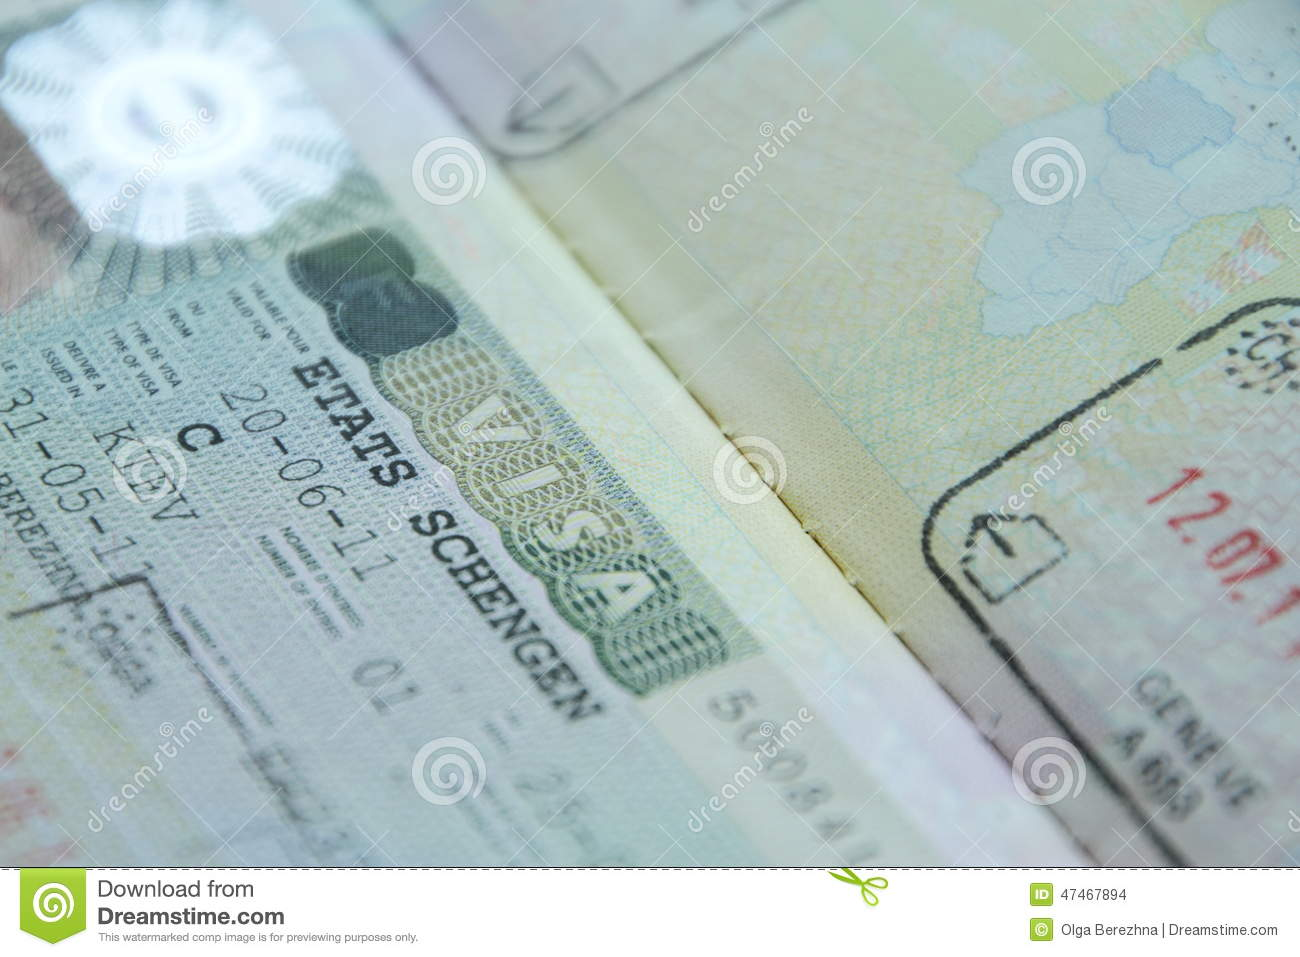 visa-macro-shot-schengen-pport-47467894 Italy Visa Application Form Download on italy tourism, italy tourist visa, italy business, italy study, italy visa information, italy visa requirements, italy visa application letter sample,